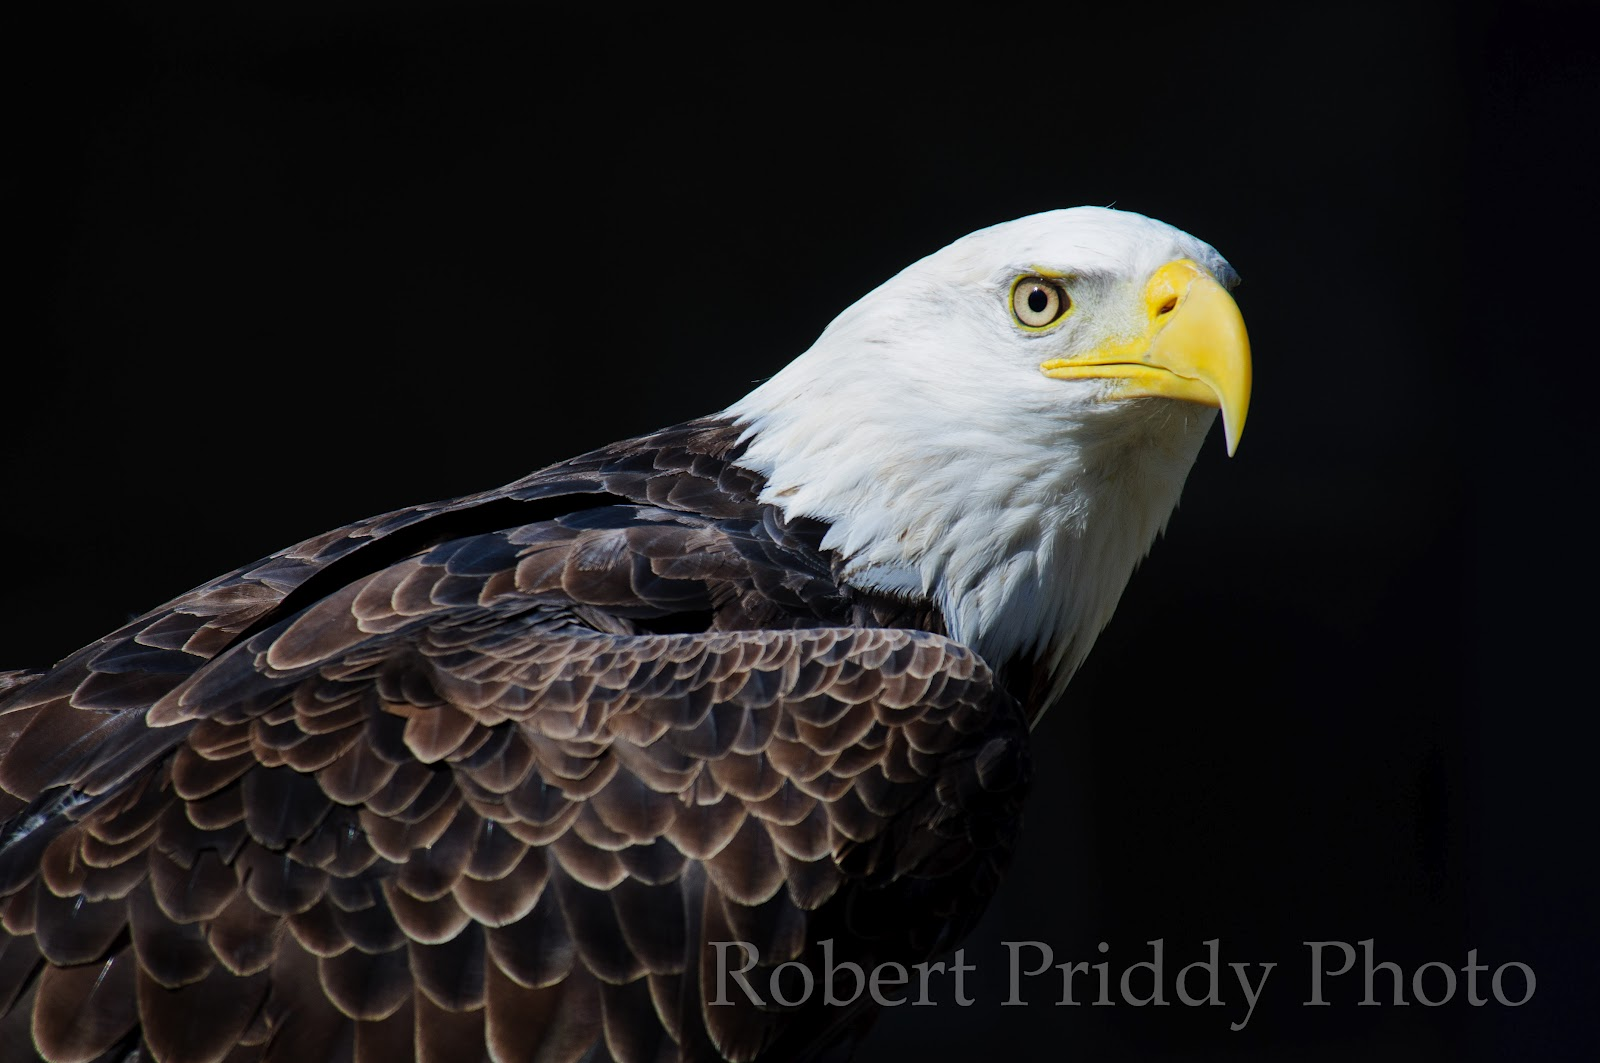 Robs photo facts the bald eagle became our national symbol on june 20 1782 we almost lost these magnificent creatures in the 70s due to unregulated and ignorant use of biocorpaavc